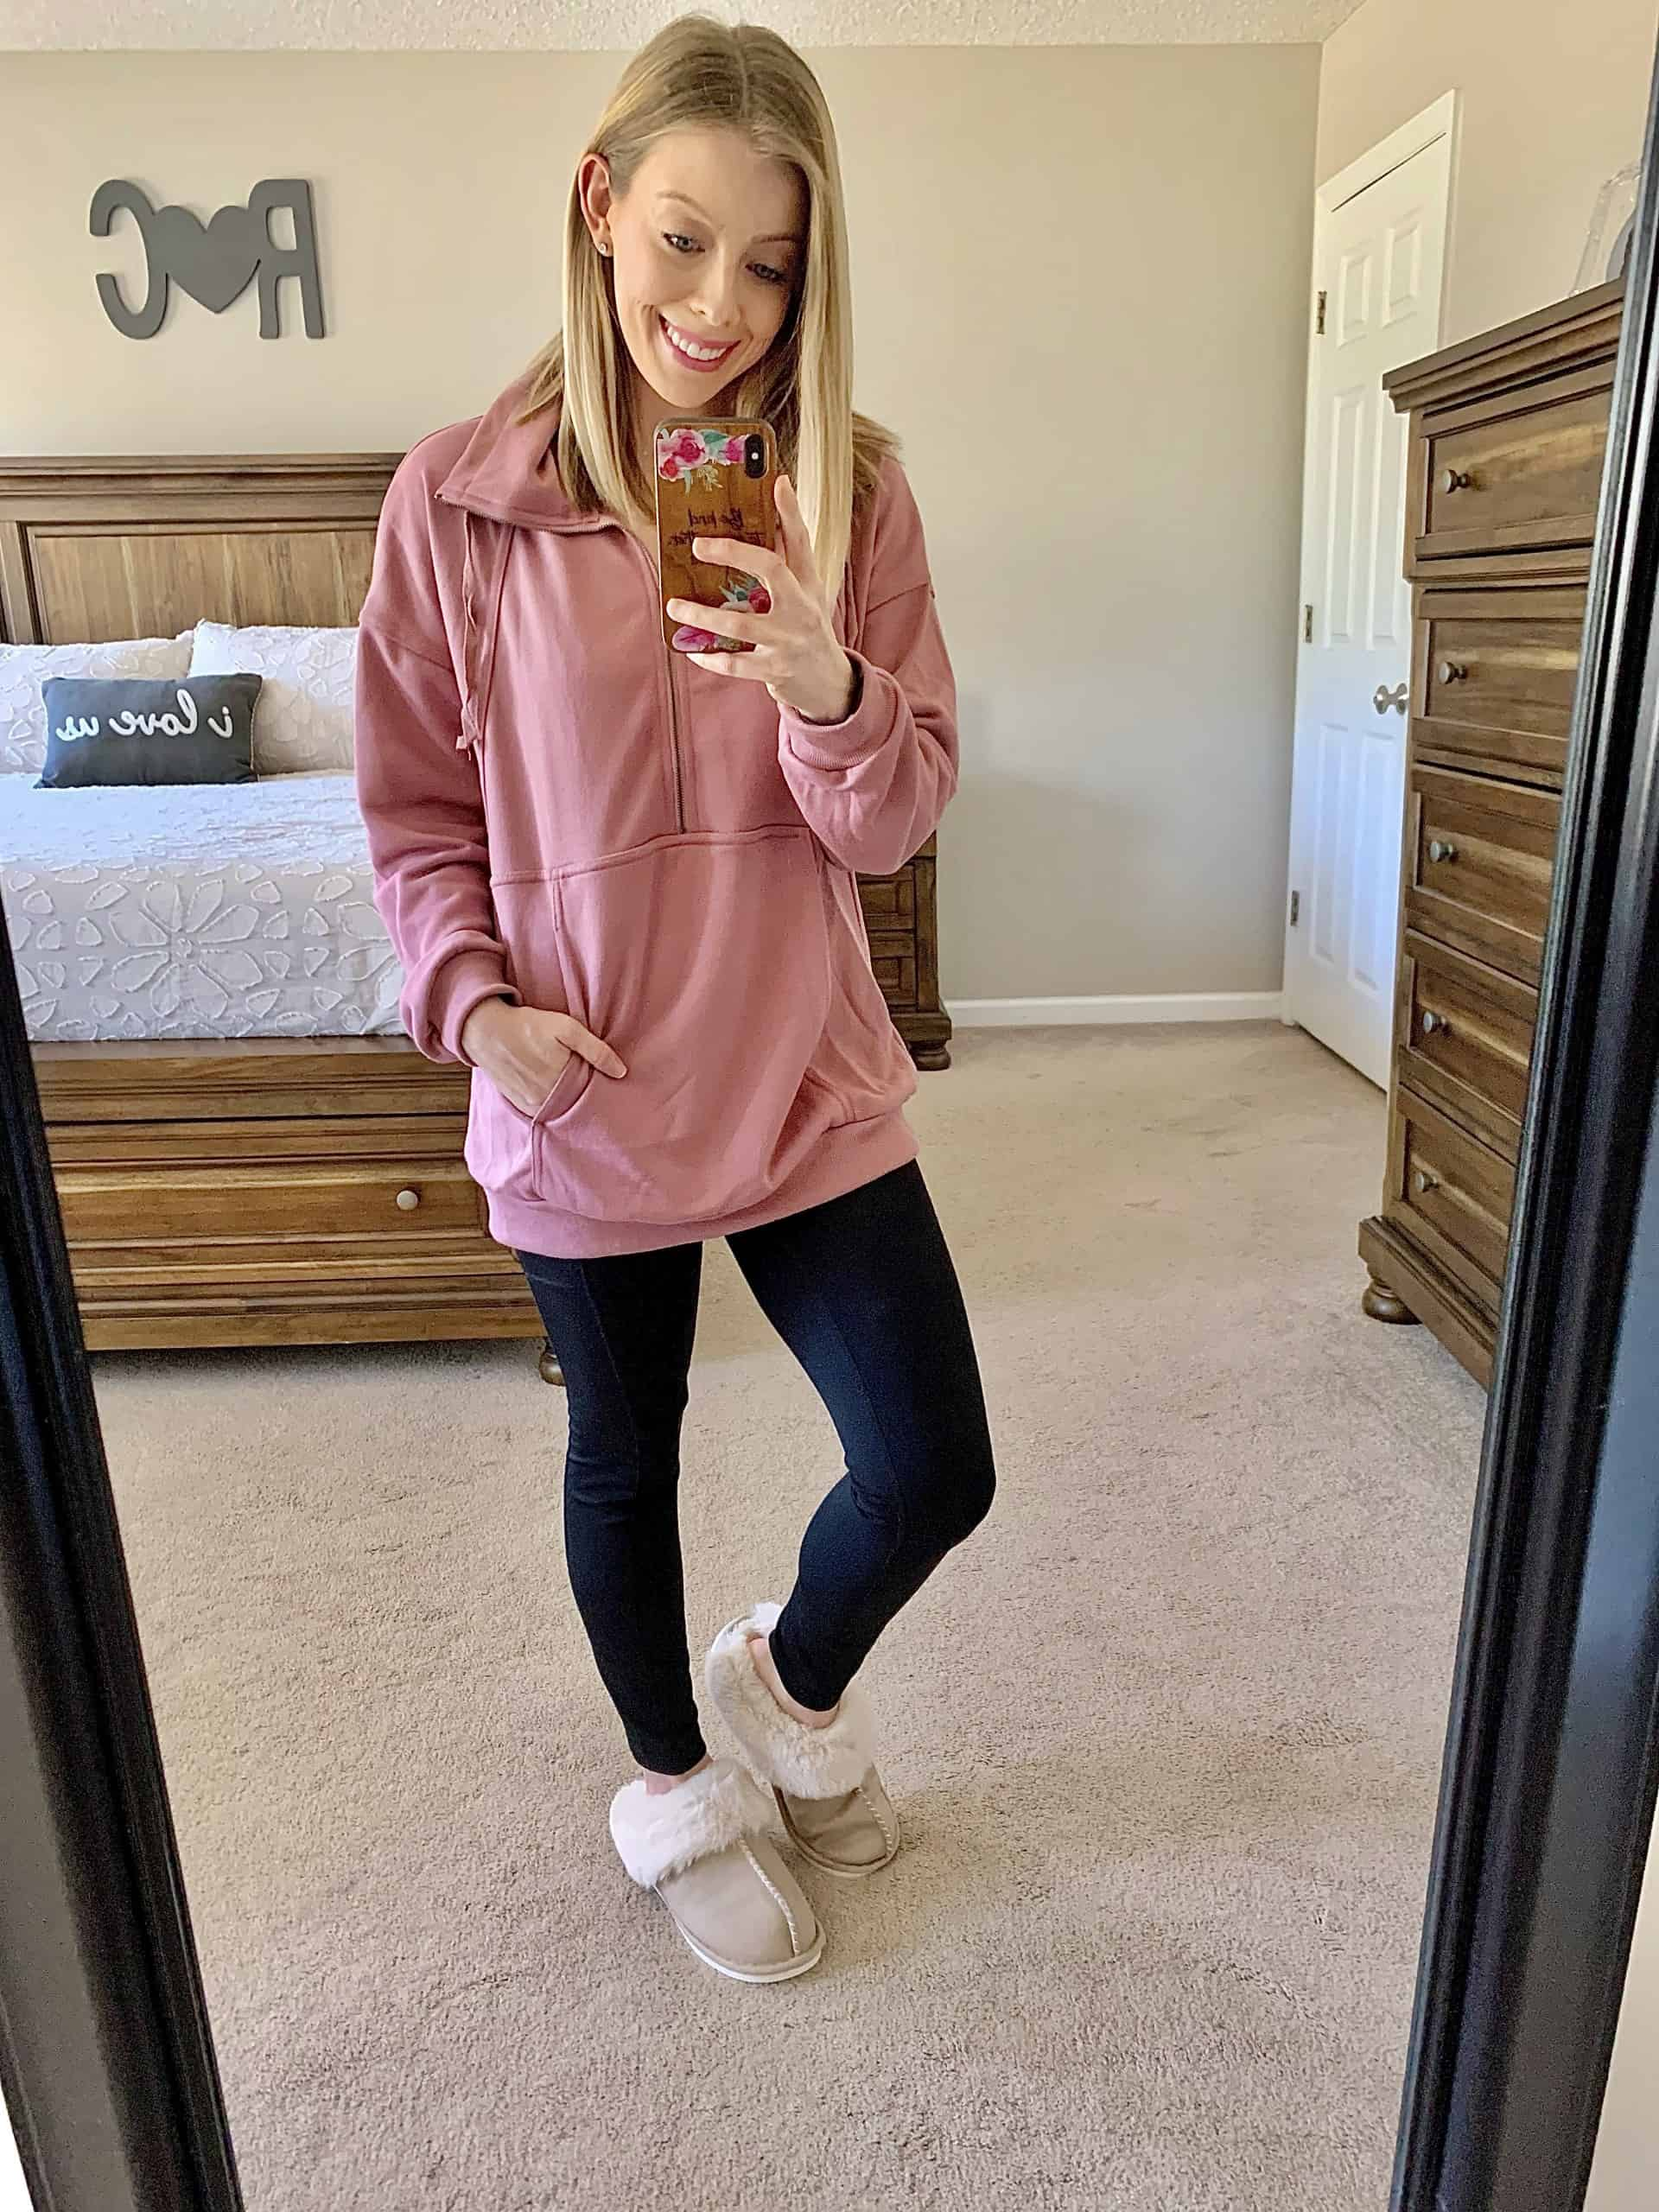 Check out my Affordable Winter Amazon Fashion Haul with cute and casual outfits and comfy loungewear for working from home! These cute amazon finds are all under $35! #amazonhaul #amazonfinds #amazon #amazonfashion #tryonhaul